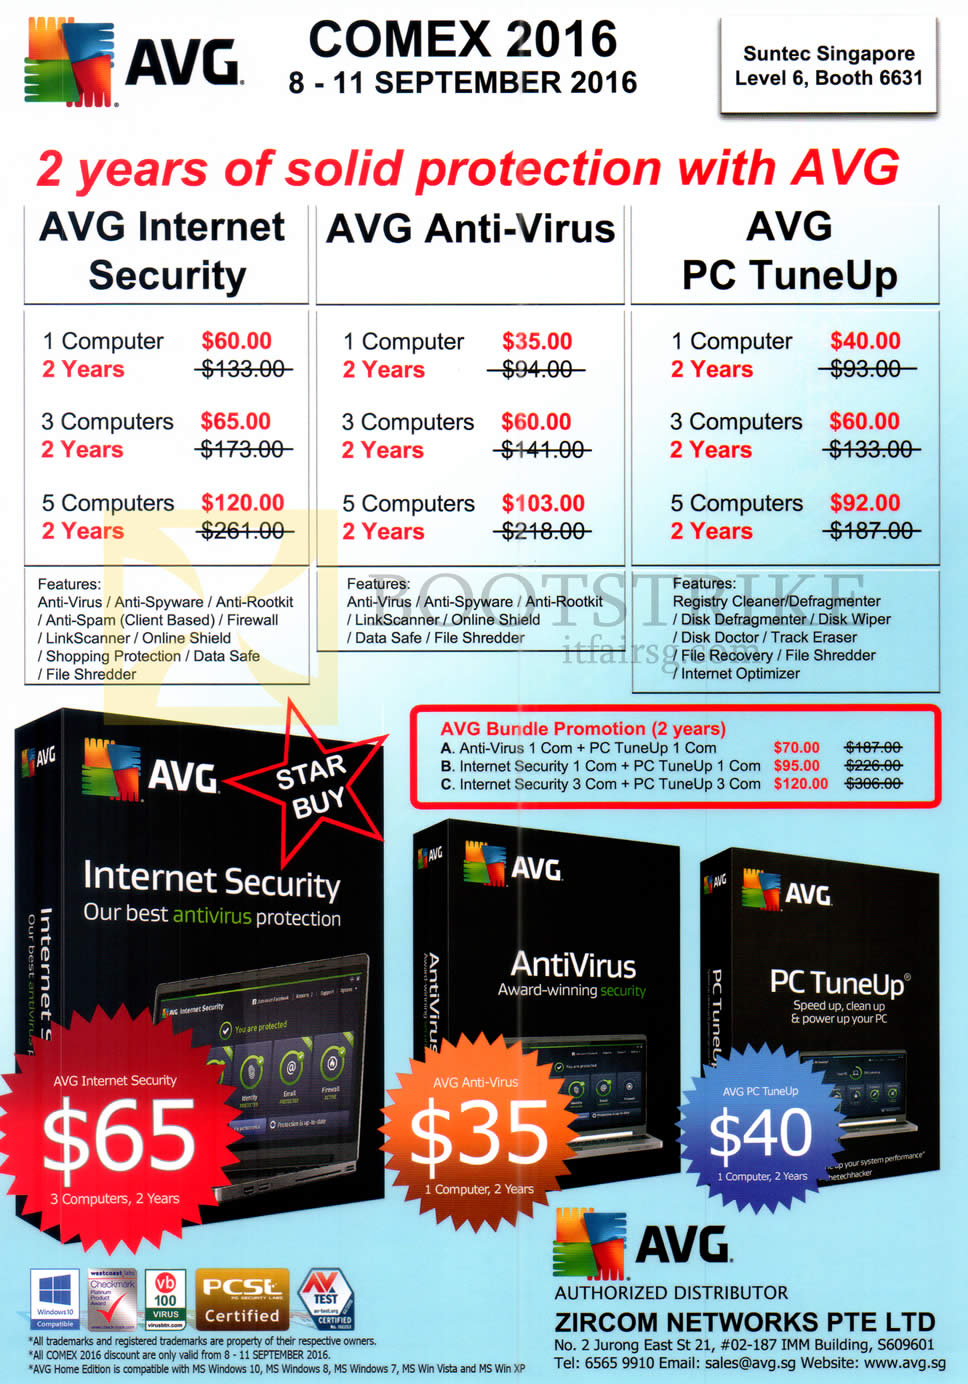 COMEX 2016 price list image brochure of Zircom Networks AVG Internet Security, Anti-Virus, PC TuneUp, Bundle Promotions